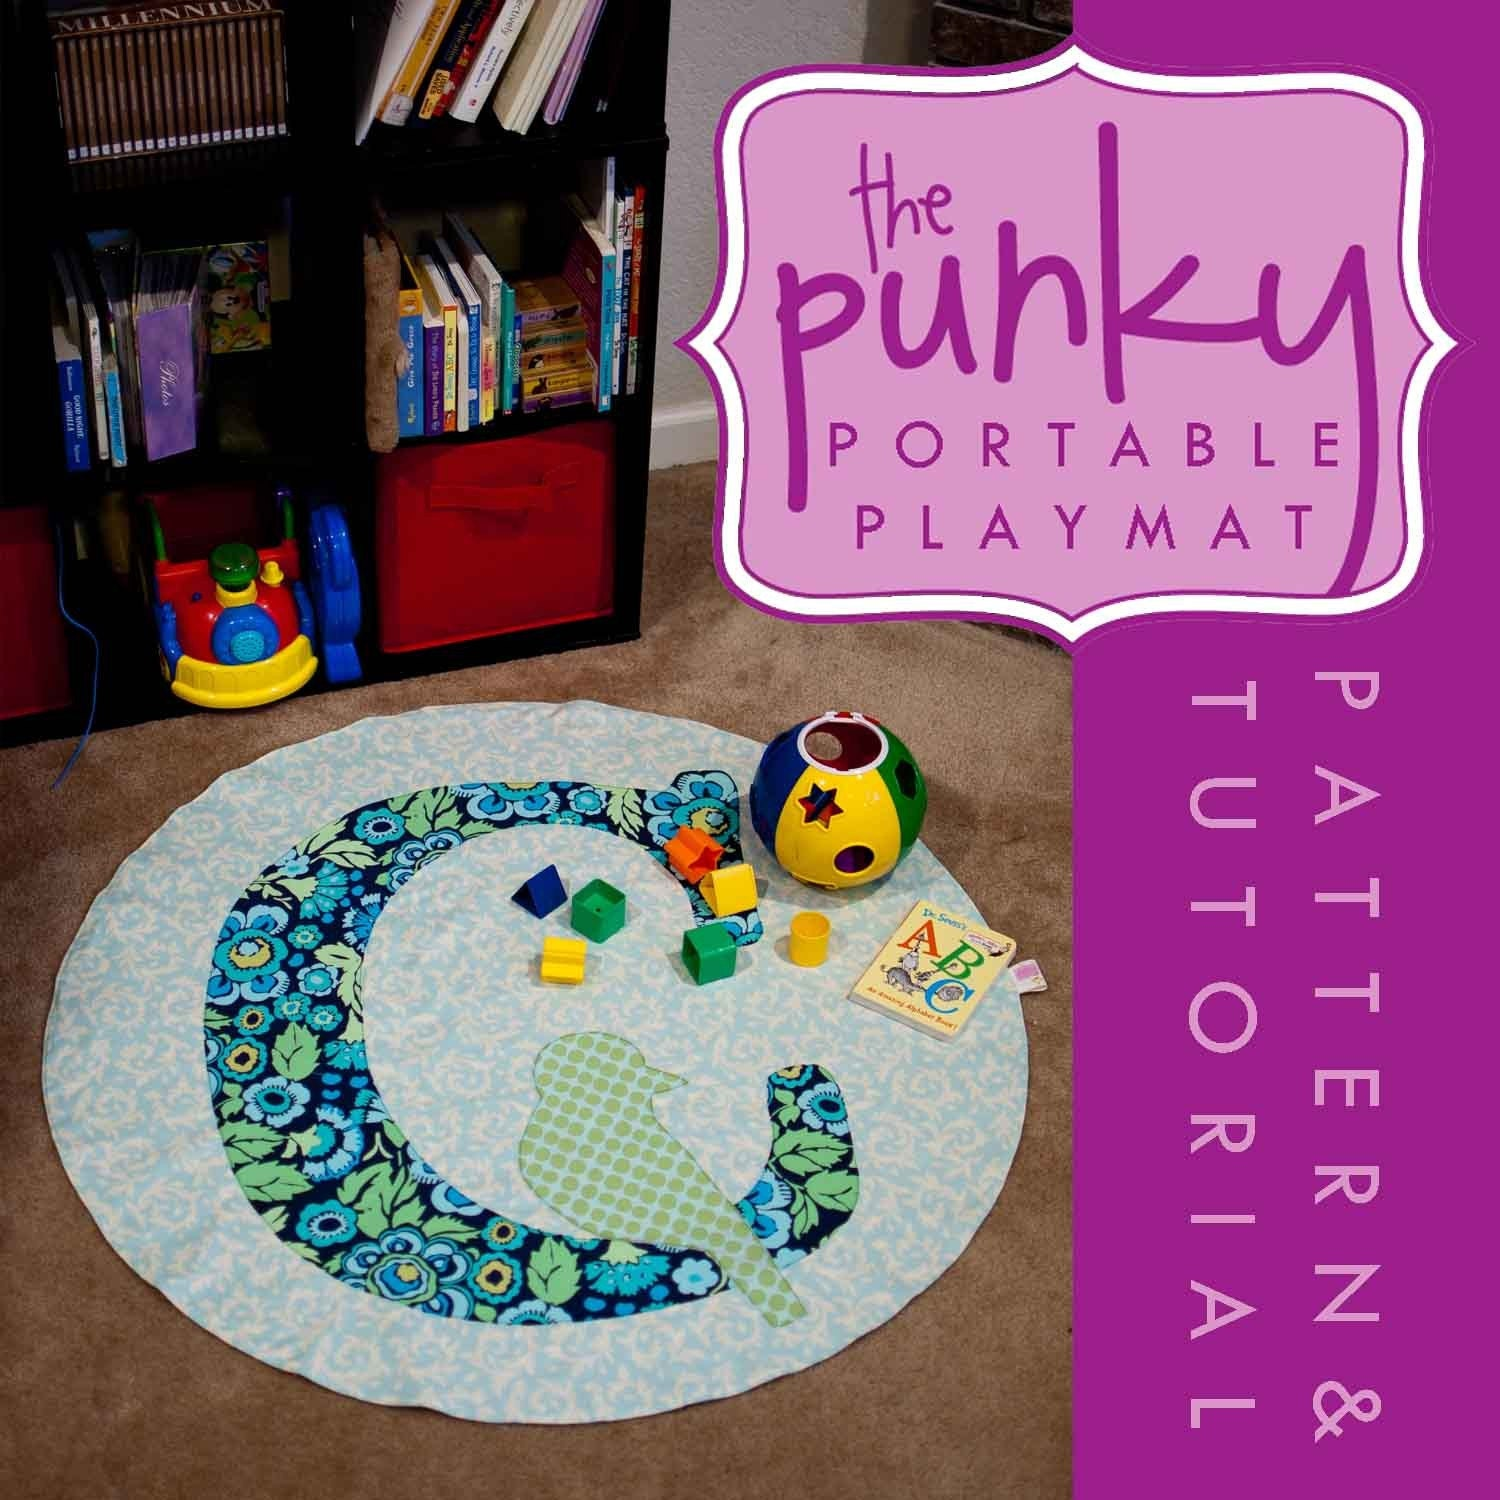 Bird on a Letter- Pattern and Tutorial PDF Punky Portable Play Mat, Stroller Blanket, Rug, Throw, Sewing, Easy, Activity, Toy, Colorful, High Contrast, DIY, Custom, Personalized, Monogram